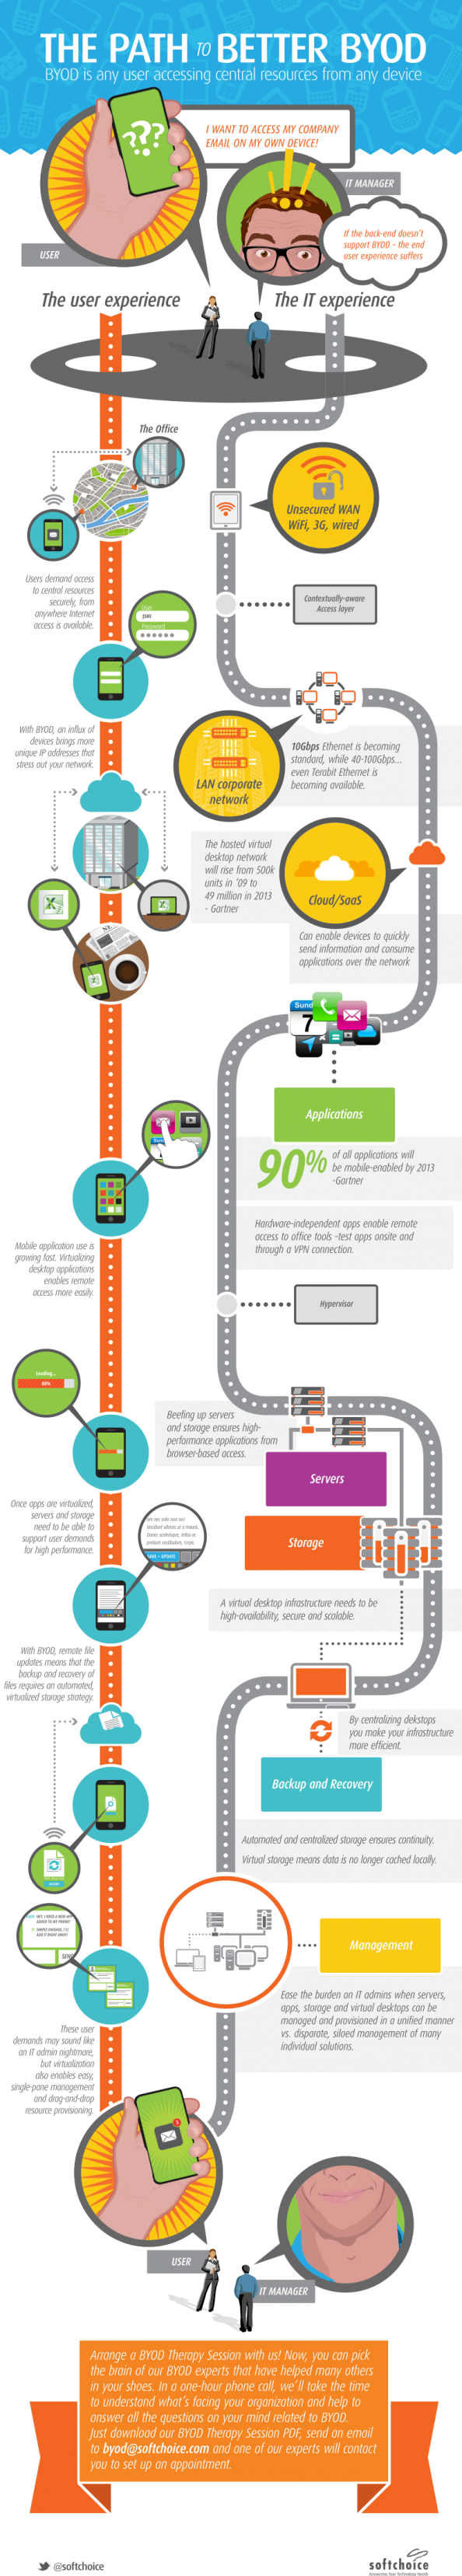 The Path To Better BYOD Infographic